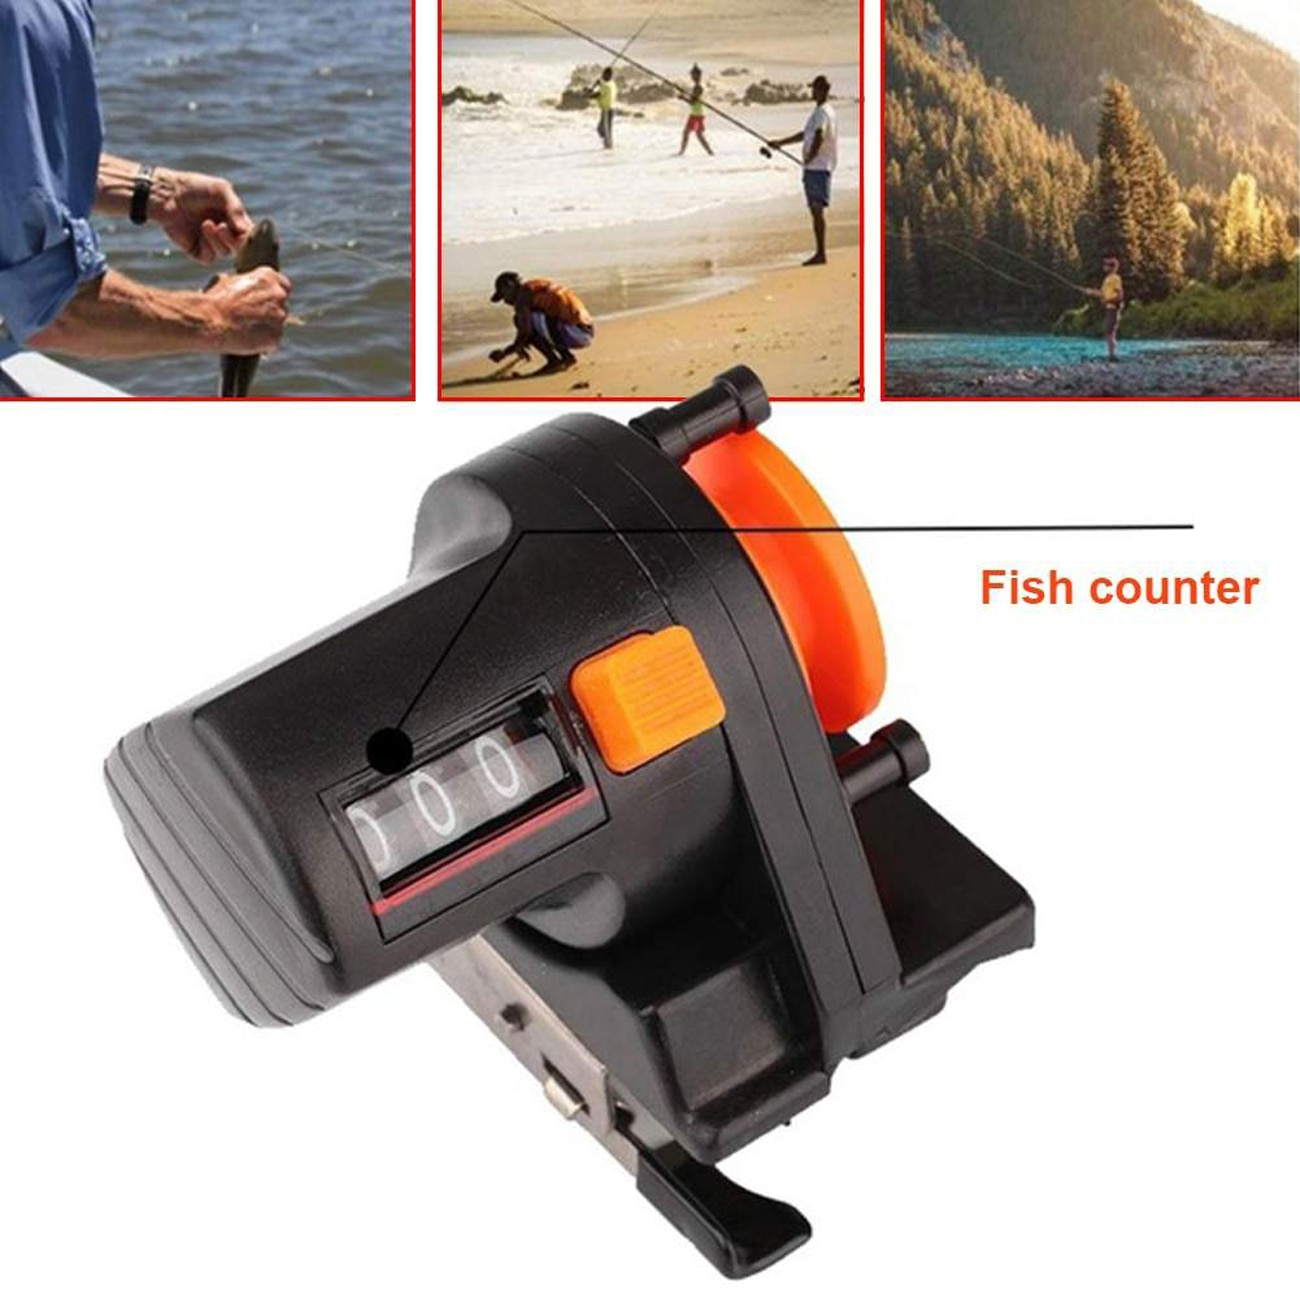 free shipping electronic rti 999 9m fishing line counter abs plastic digital display depth finder reel meter gauge fishing tool 1pc 0-999M 6cm Pesca Fishing Line Depth Finder Counter Fishing Tool Tackle Length Gauge Counter Fishing Tackle Tool